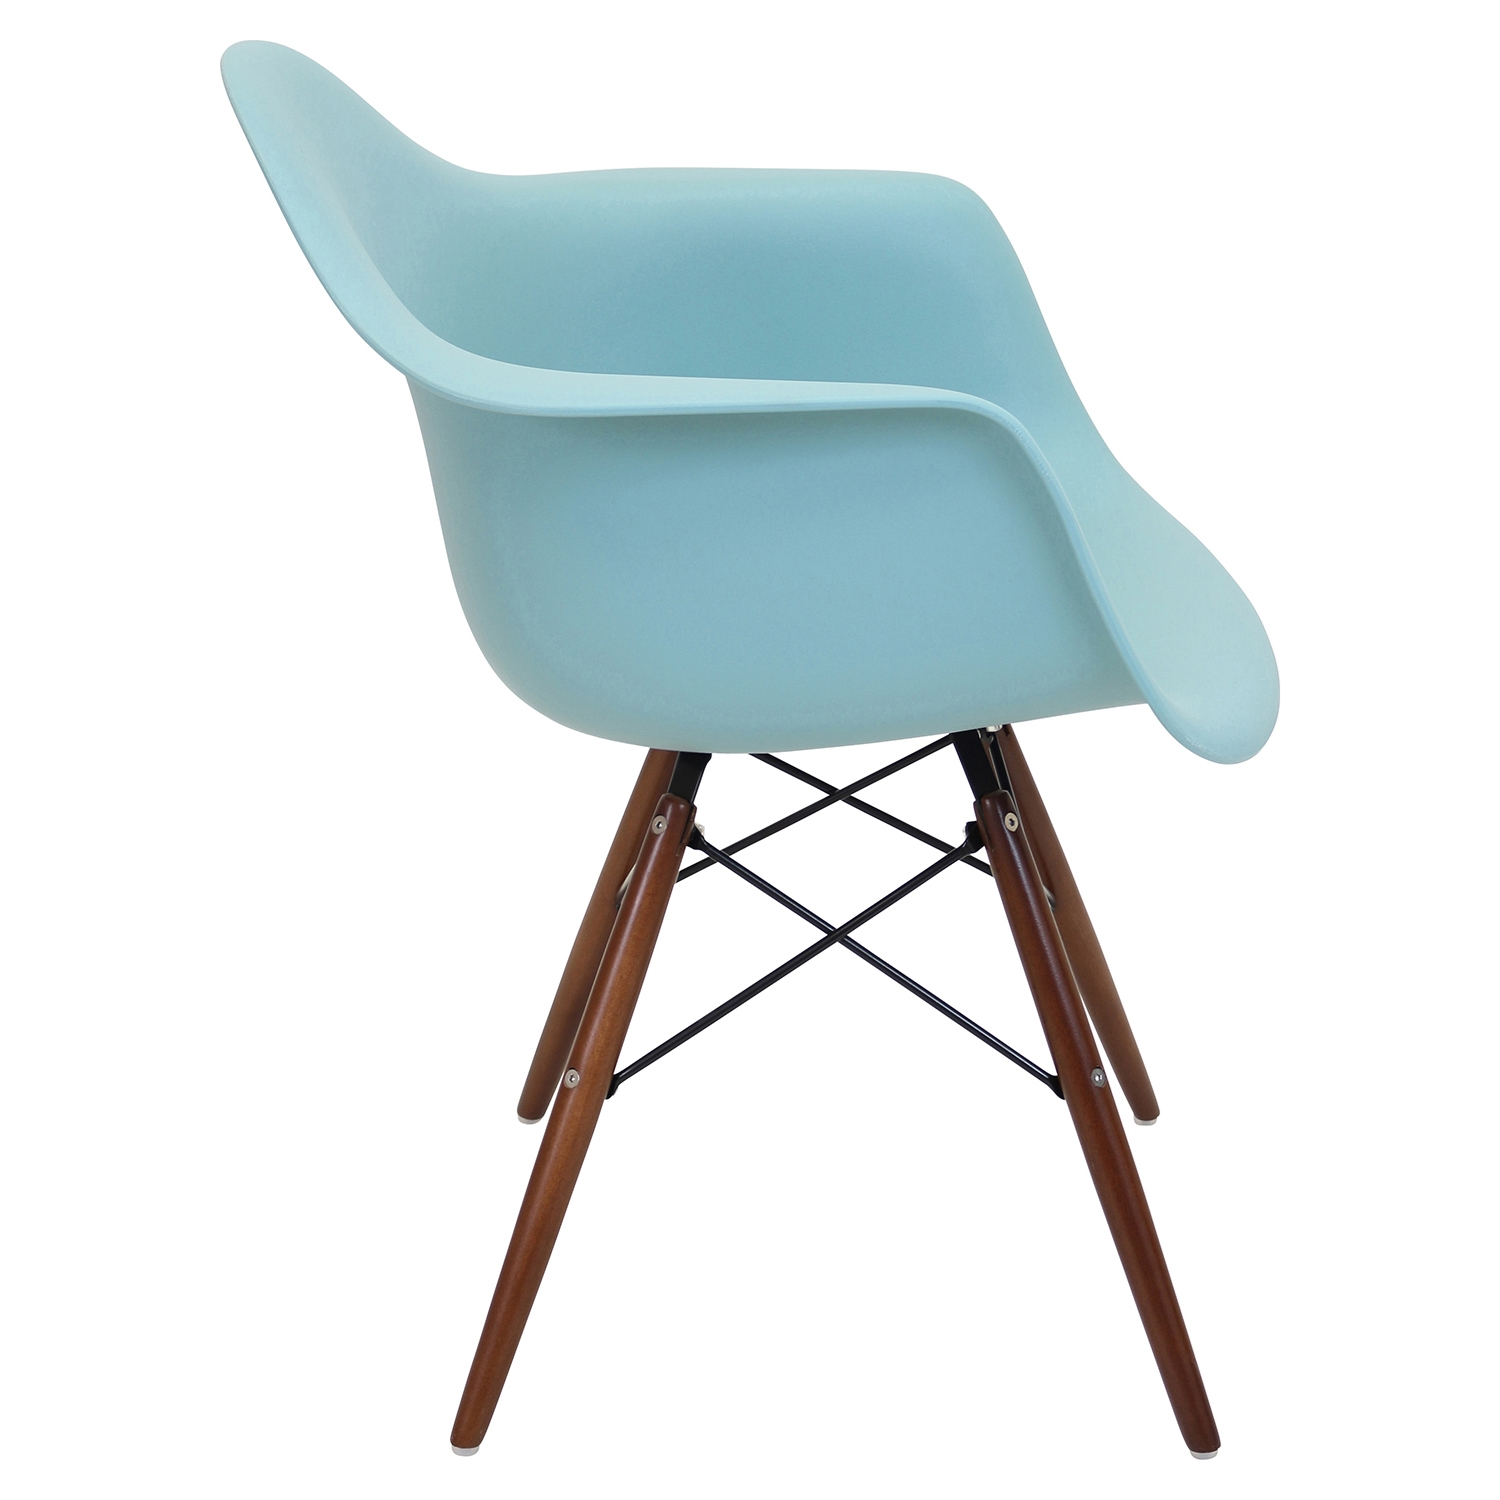 Neo Flair Chair - Sea Green, Espresso (Set of 2) - LMS-CH-NFLPP-GN-E2